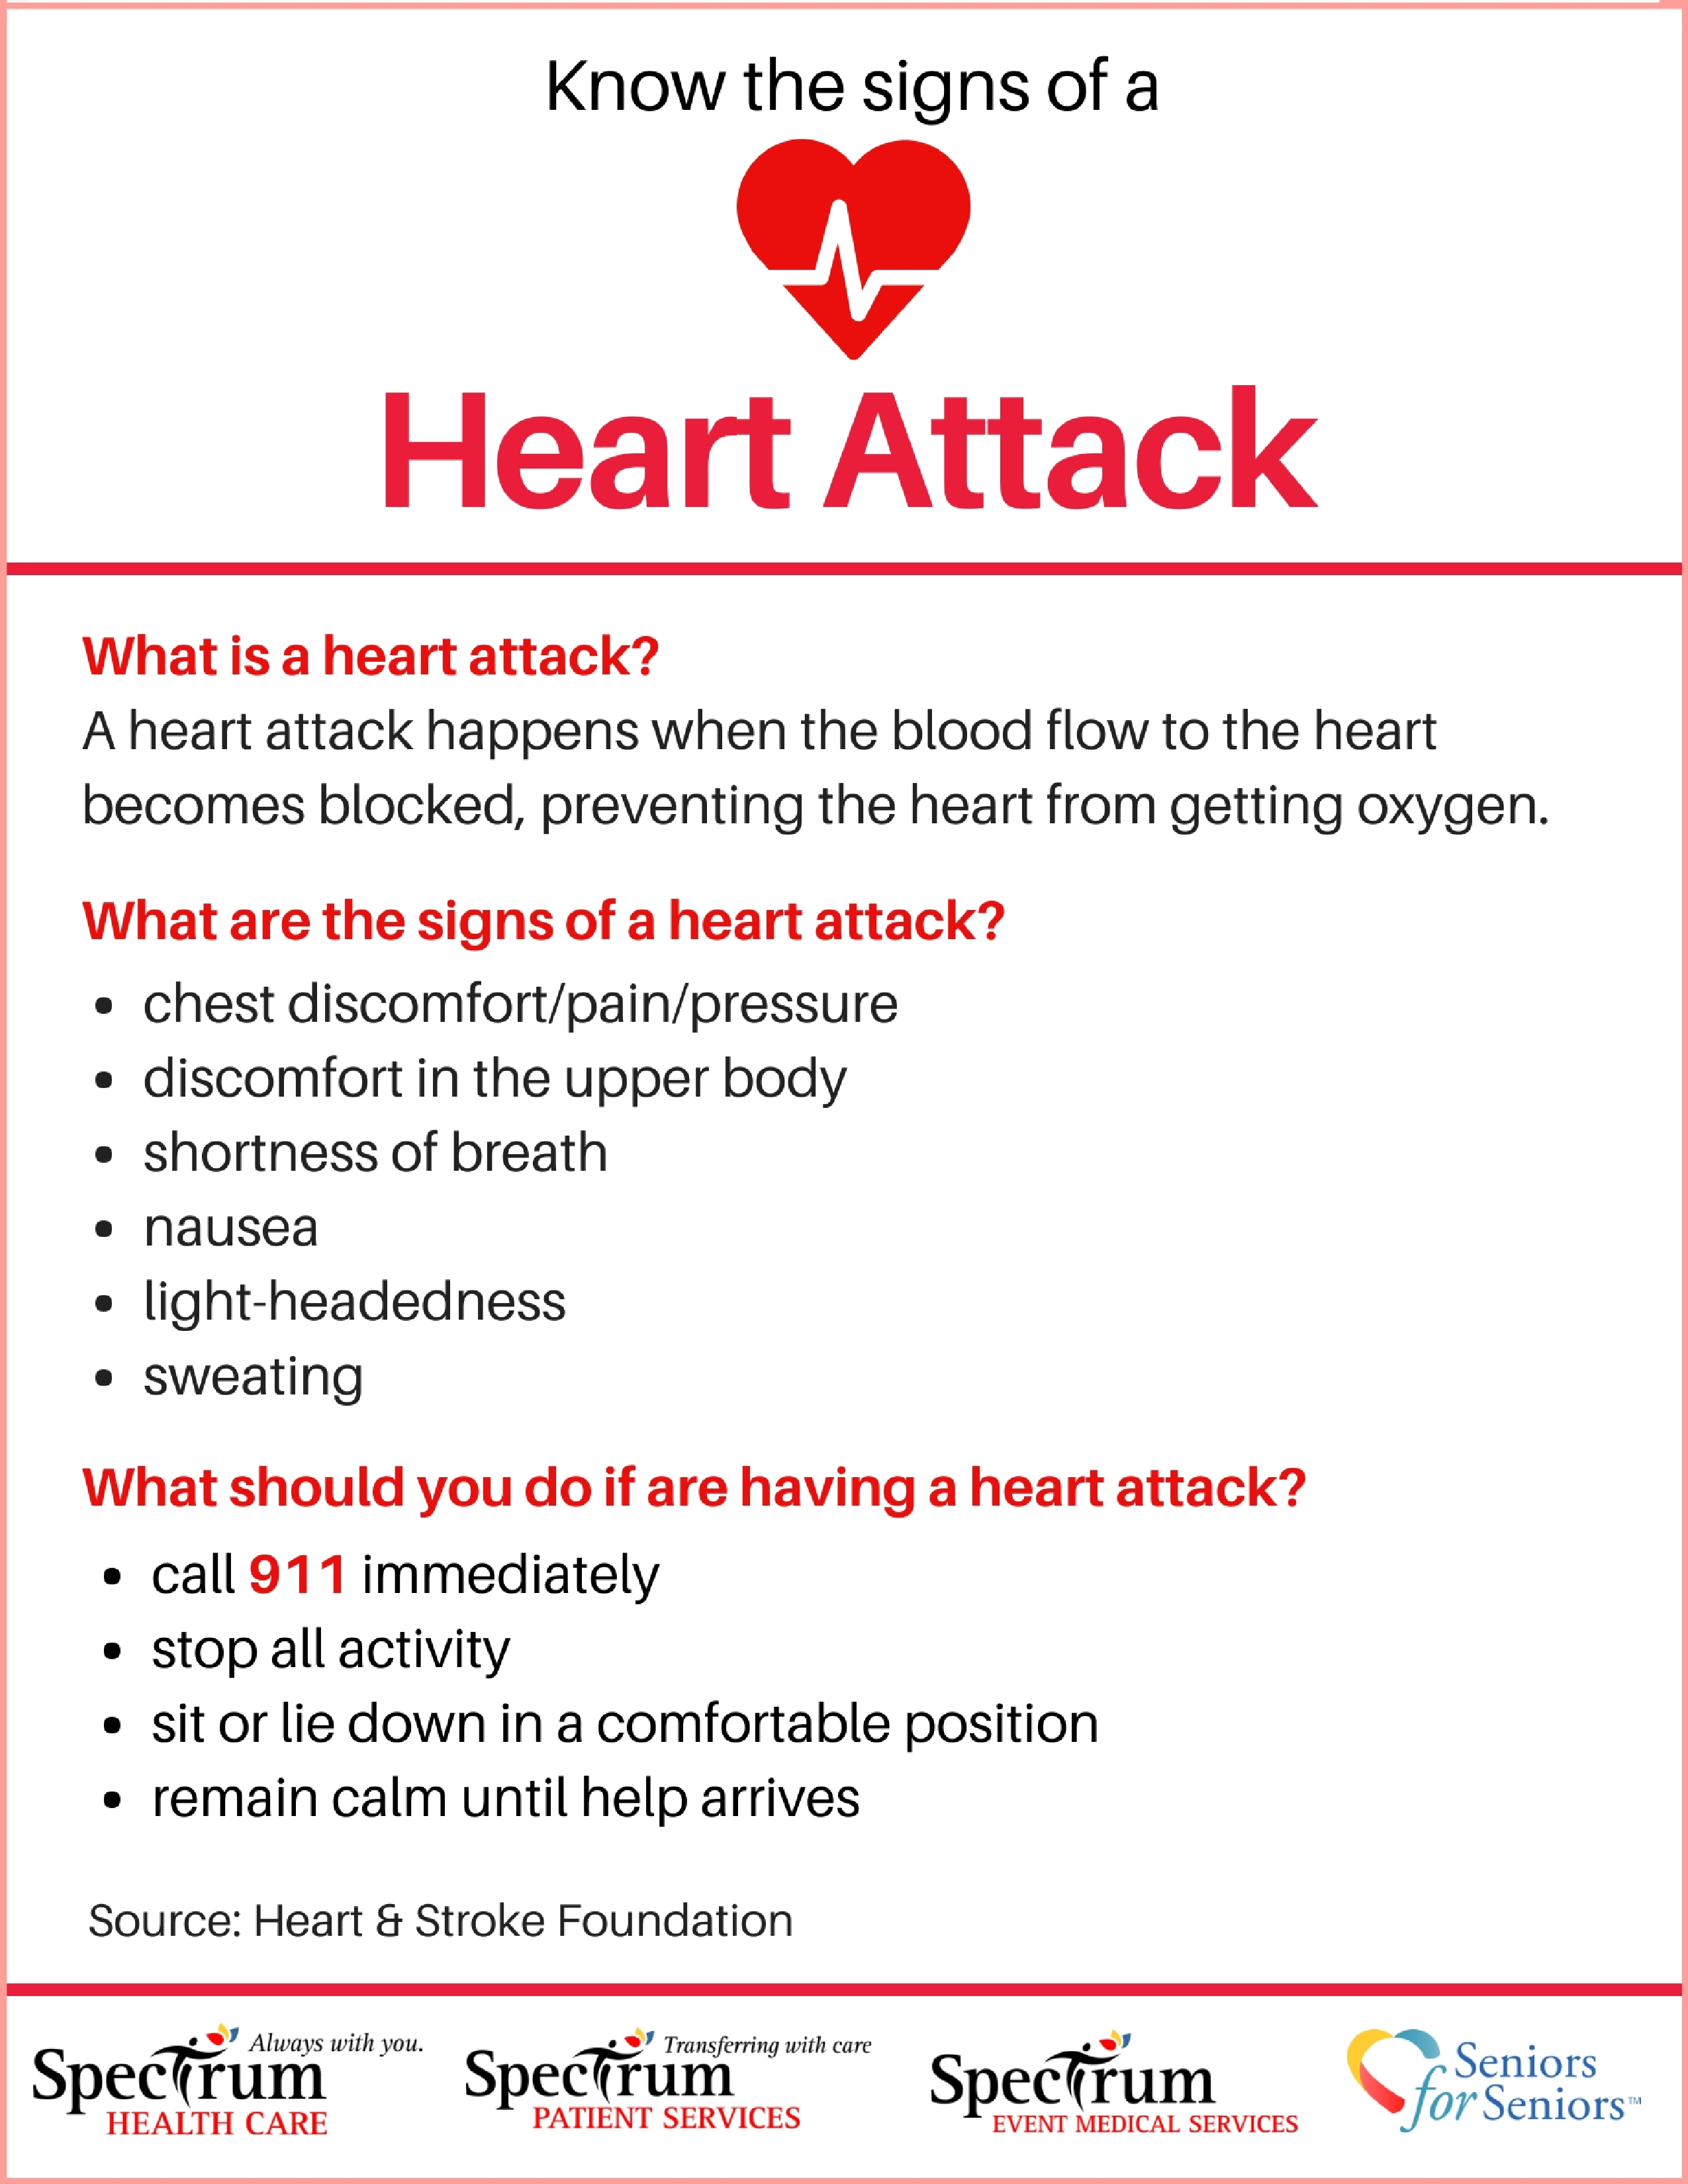 Image: Know the signs of a heart attack